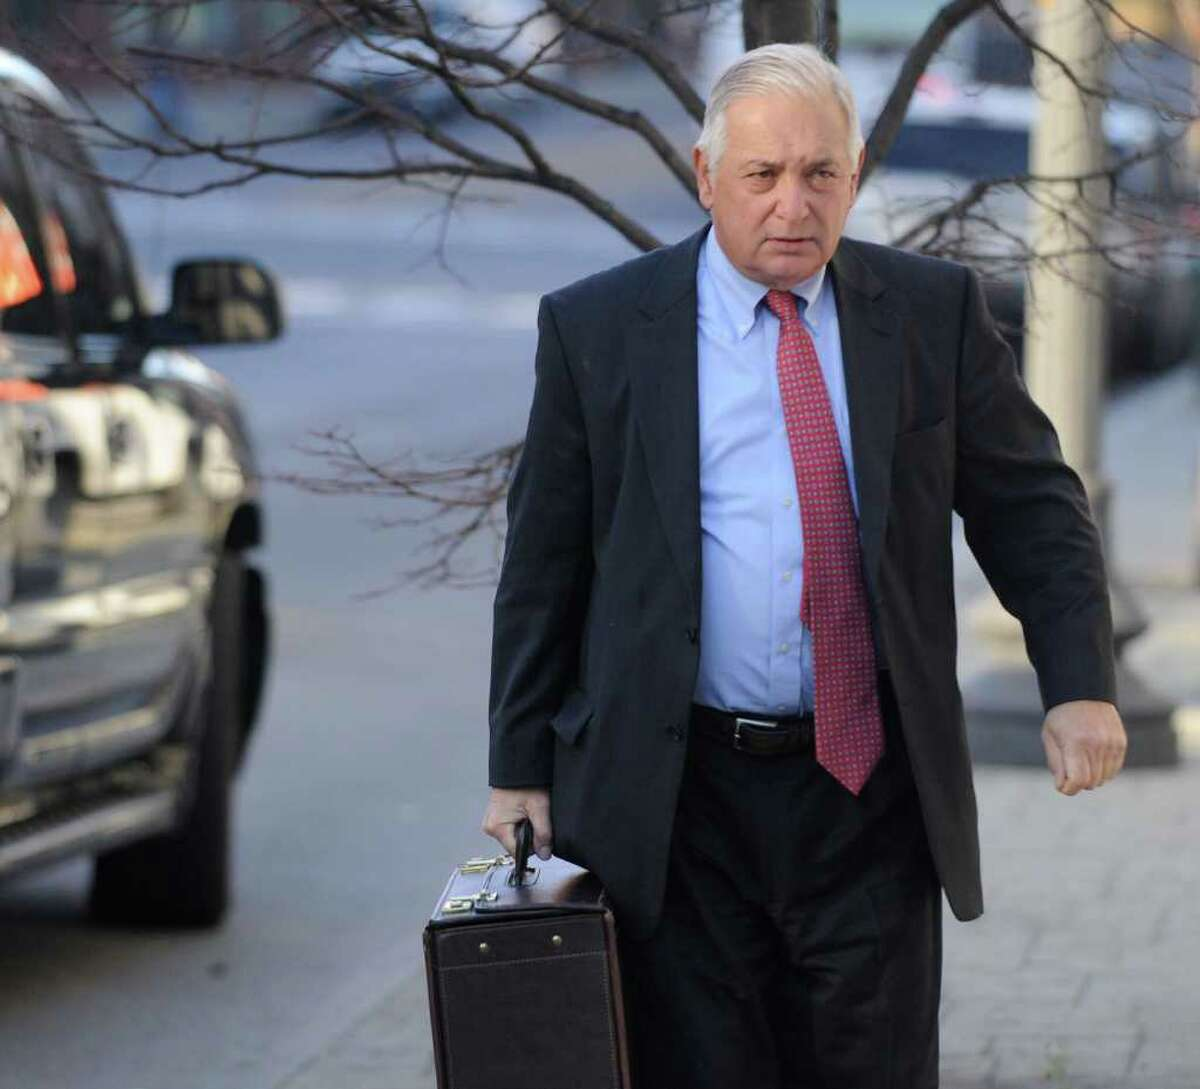 Defense Attorney William Dreyer enters the Federal Courthouse in Albany, N.Y. Nov. 13, 2009 for the continuation of the Bruno trial. (Skip Dickstein / Times Union archive)